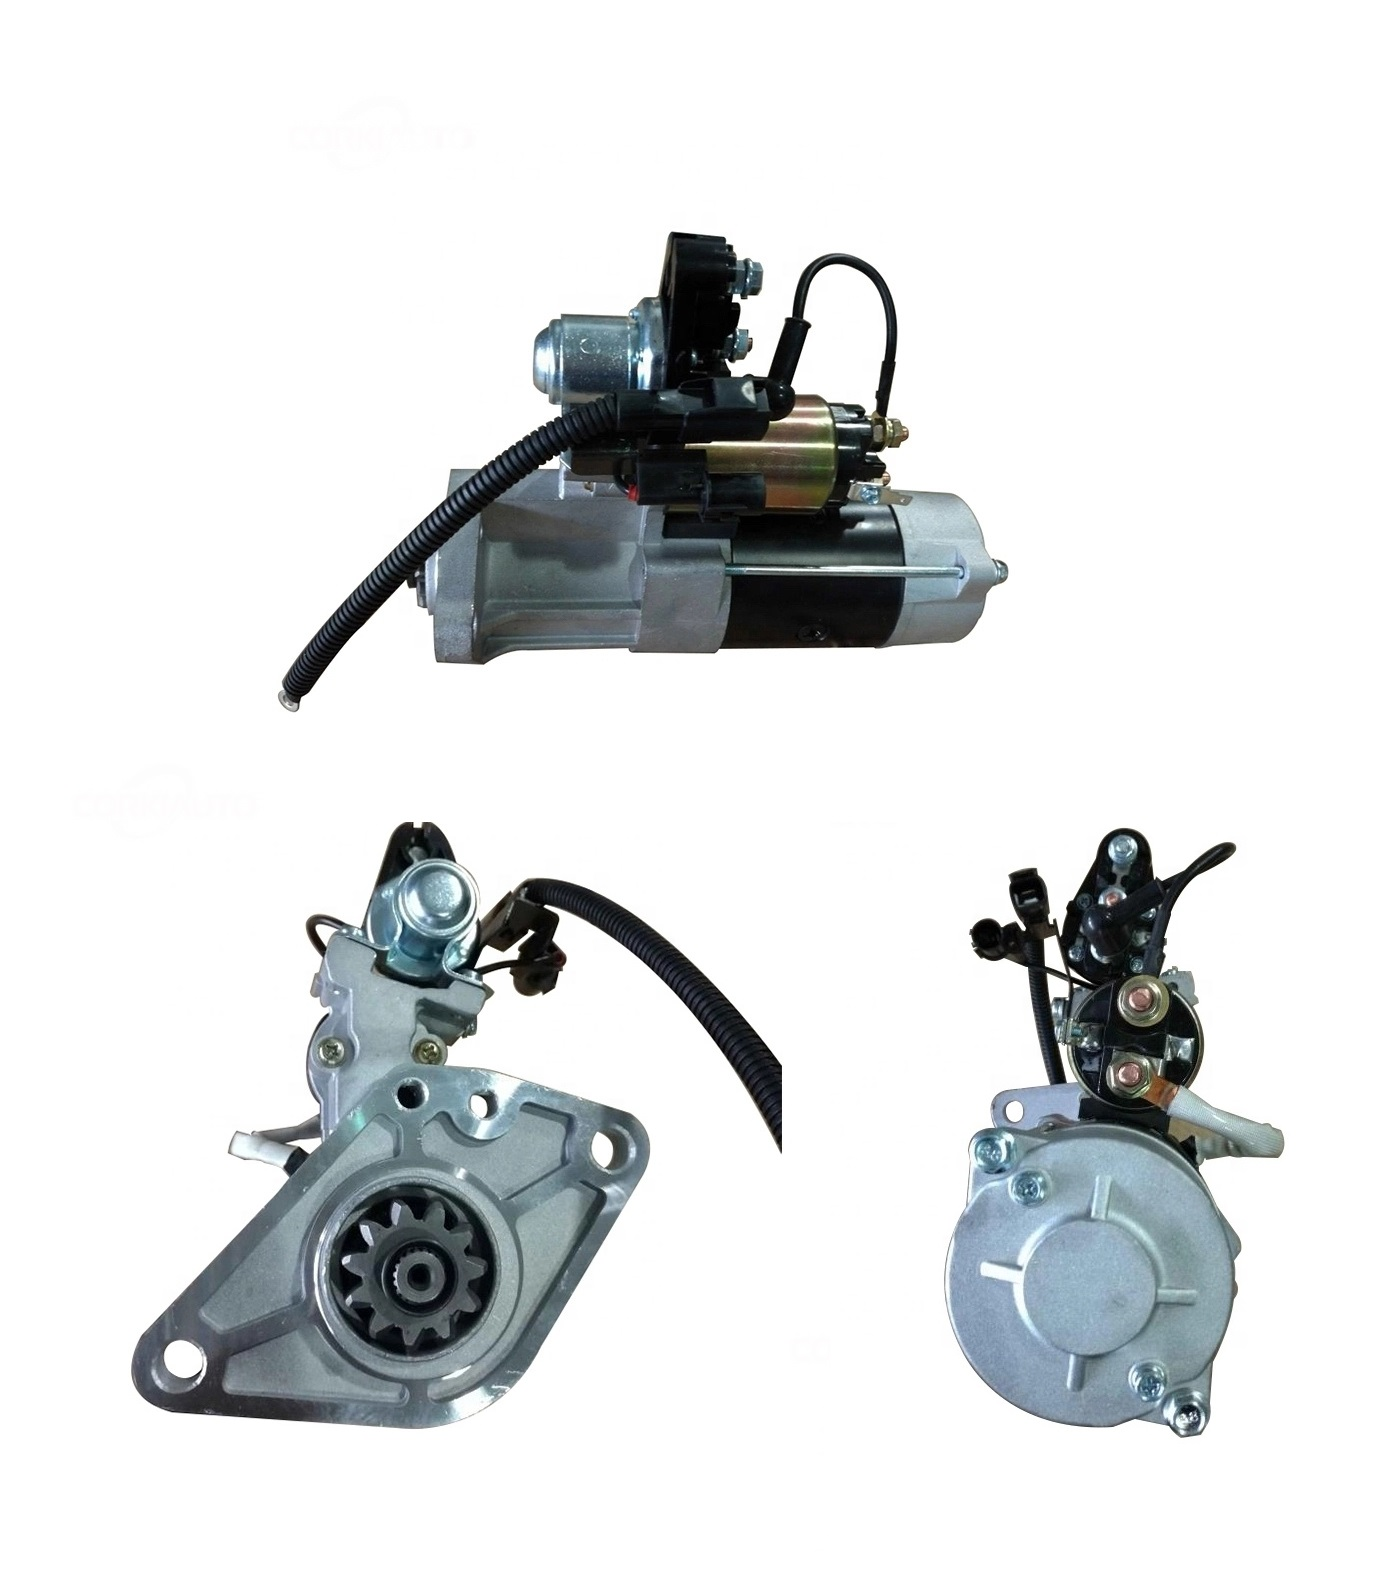 Starter Motor for HYUNDAI LIGHT HD72 HD78  209-070 36100-41100 36100-45700 24V 5.0KW 11T